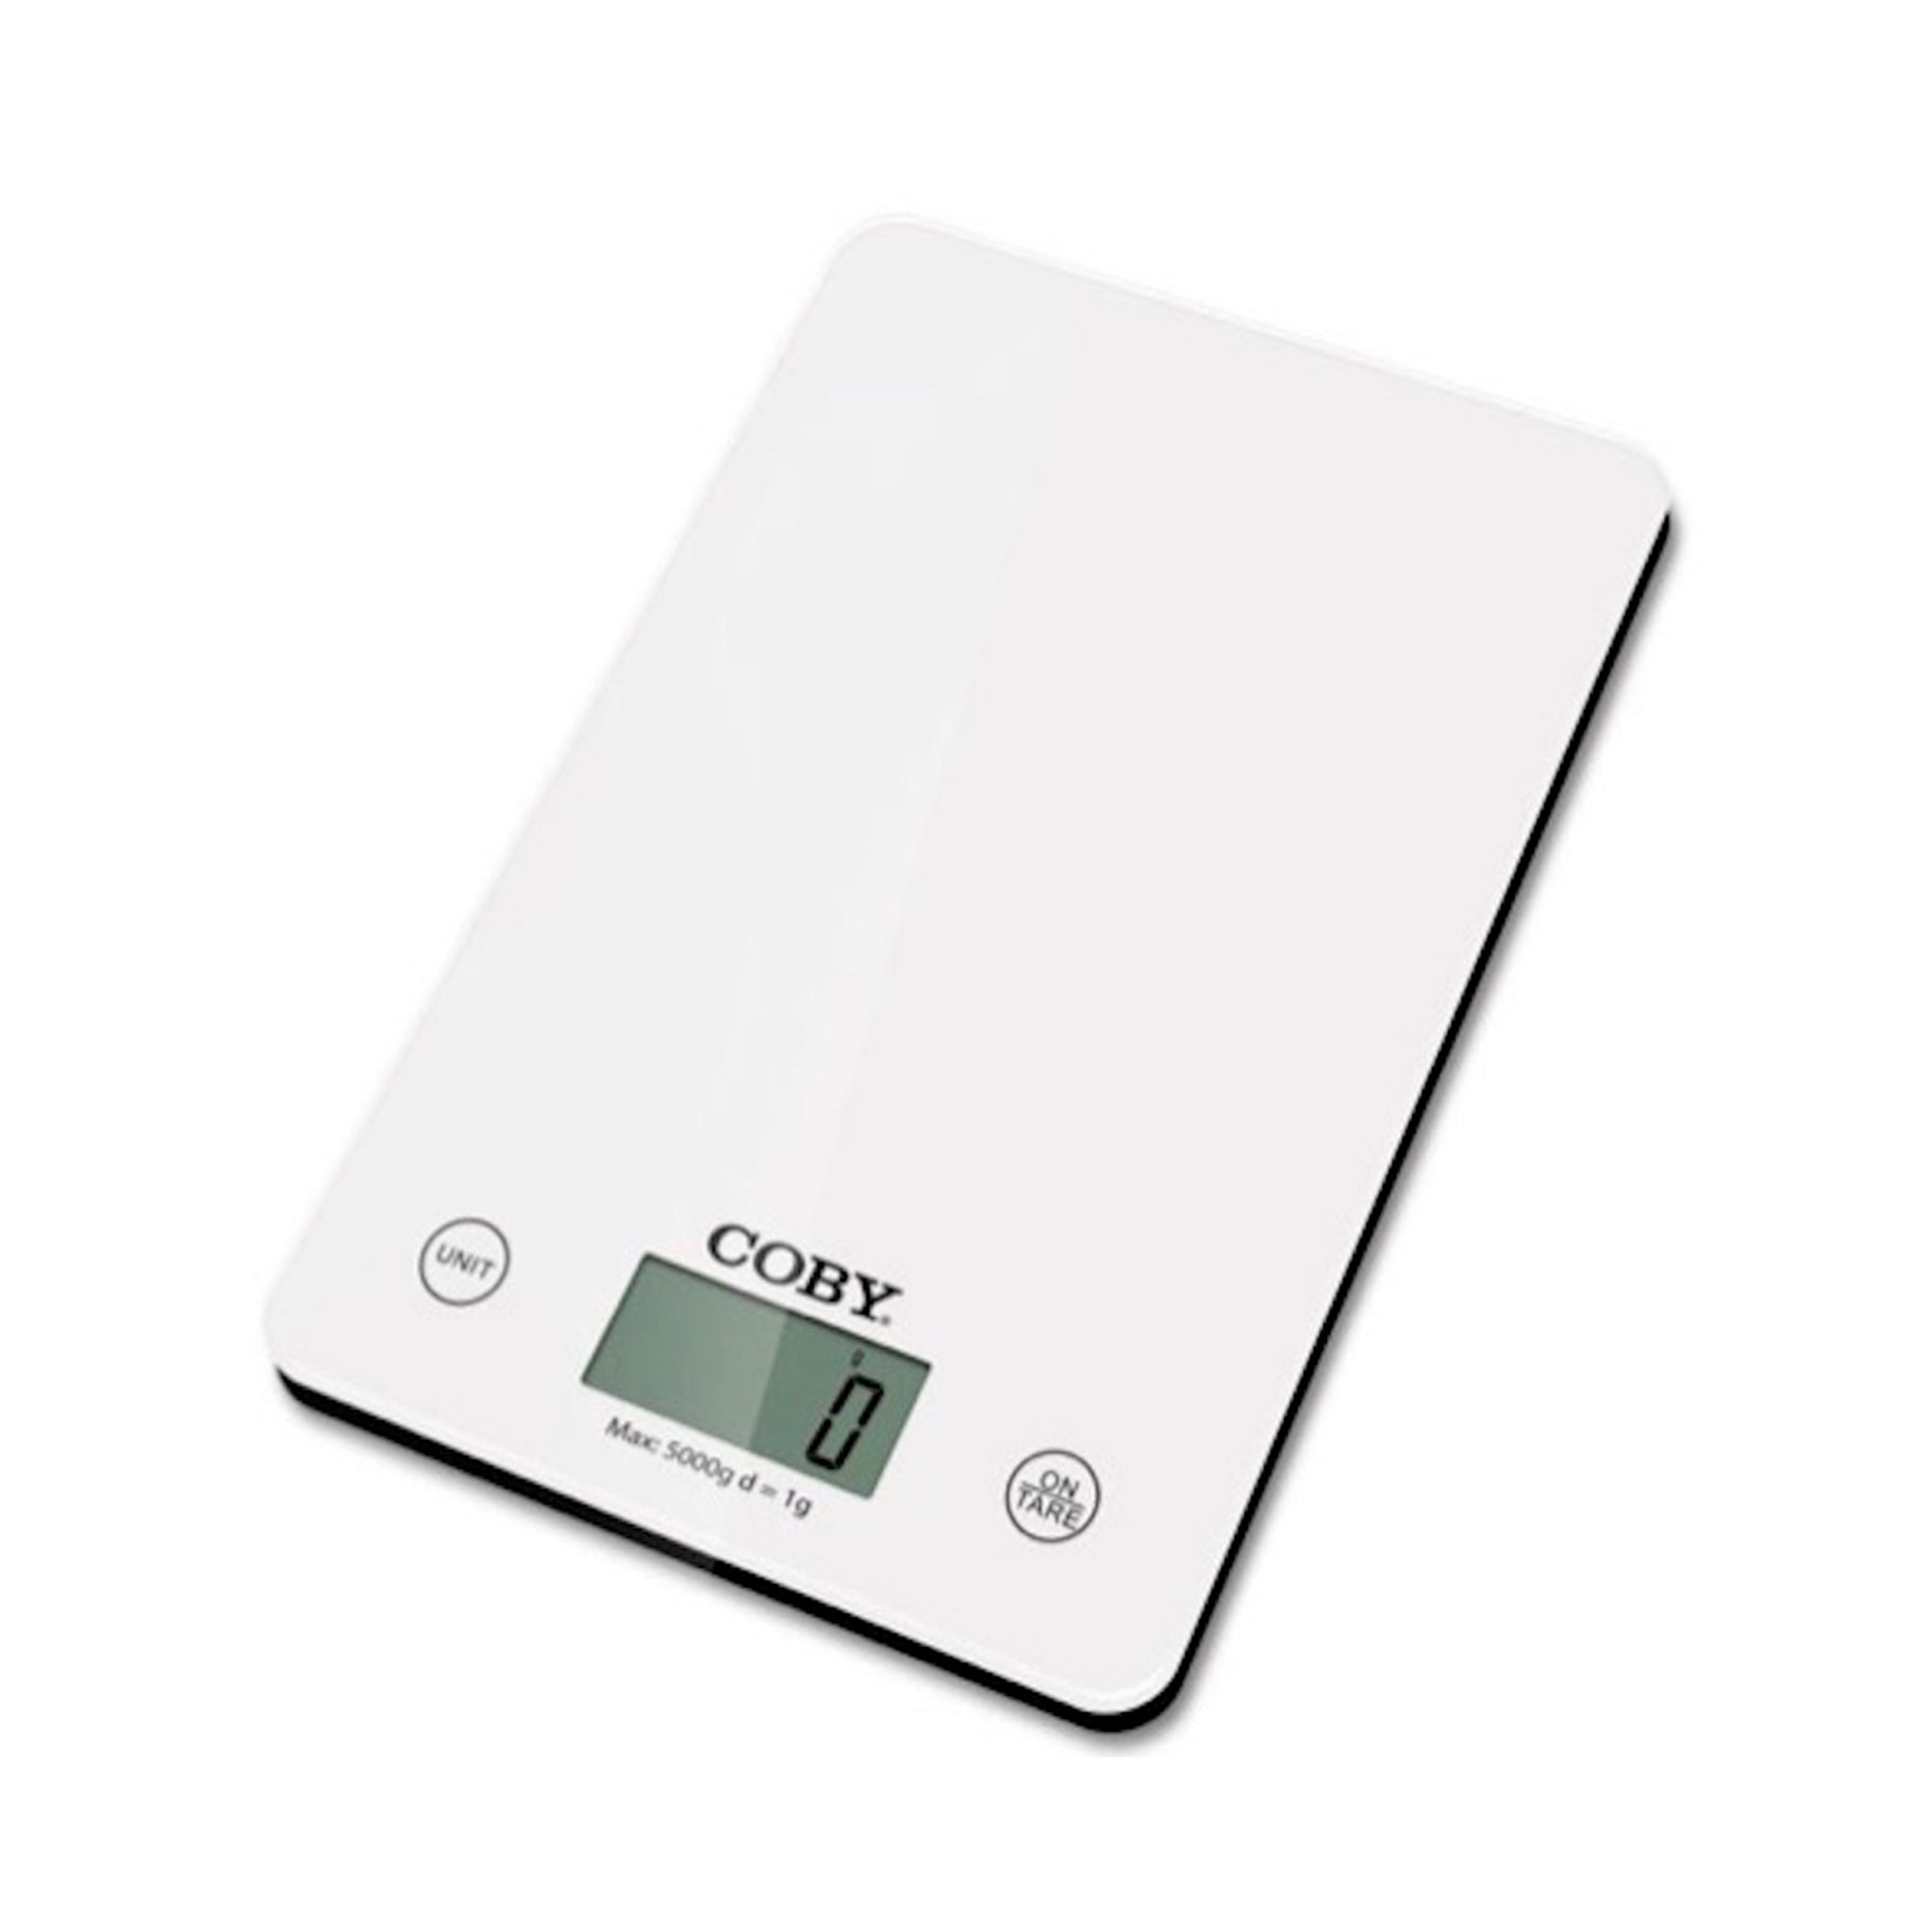 Glass Digital Kitchen Scale with TARE Function